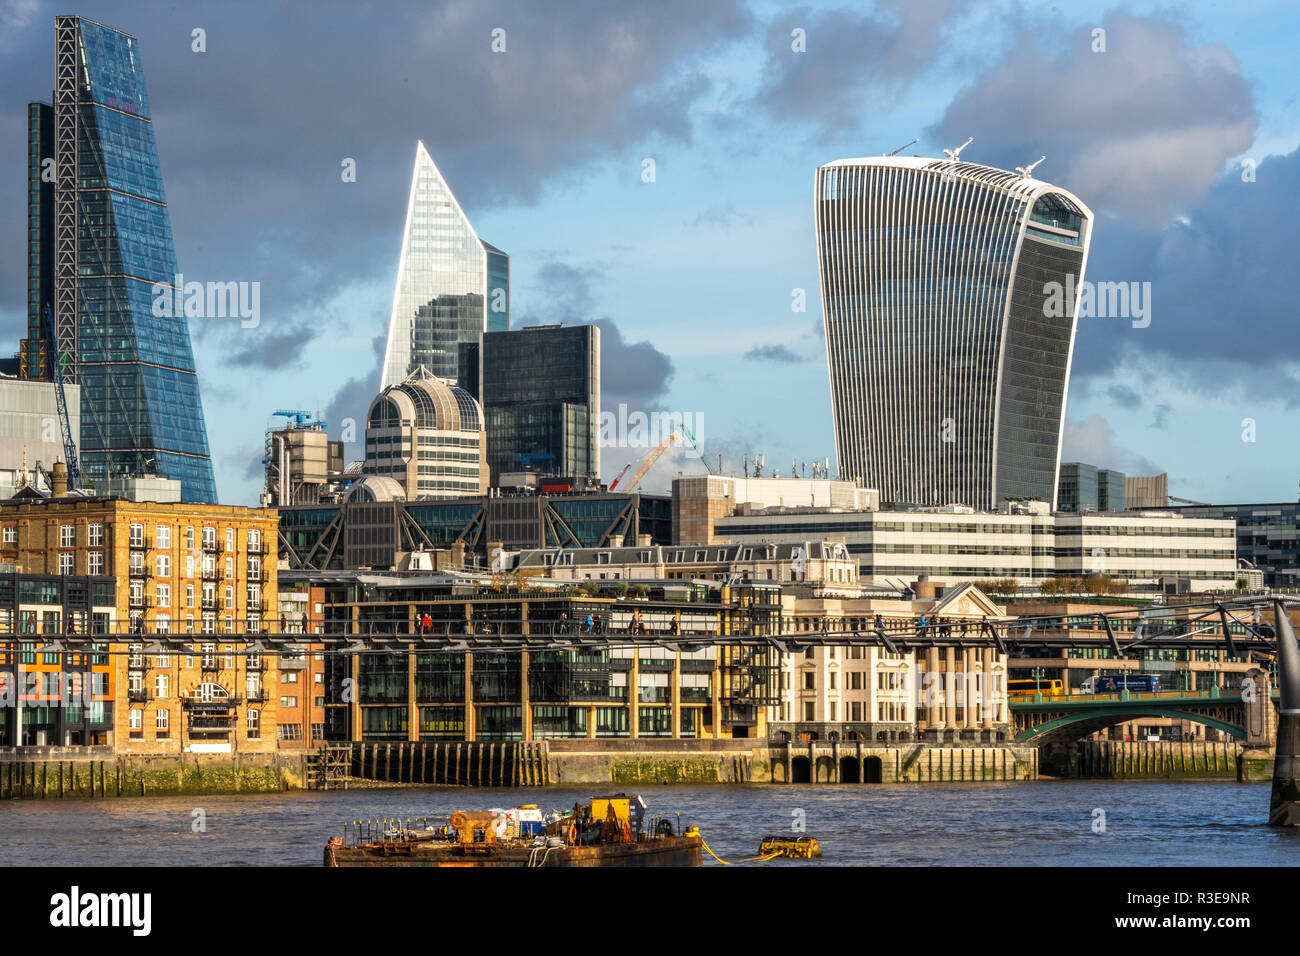 LONDON - NOVEMBER 15 : Modern skyscrapers in riverfront skyline of London, England against blue skies on sunny day on 15 November 2018 Stock Photo